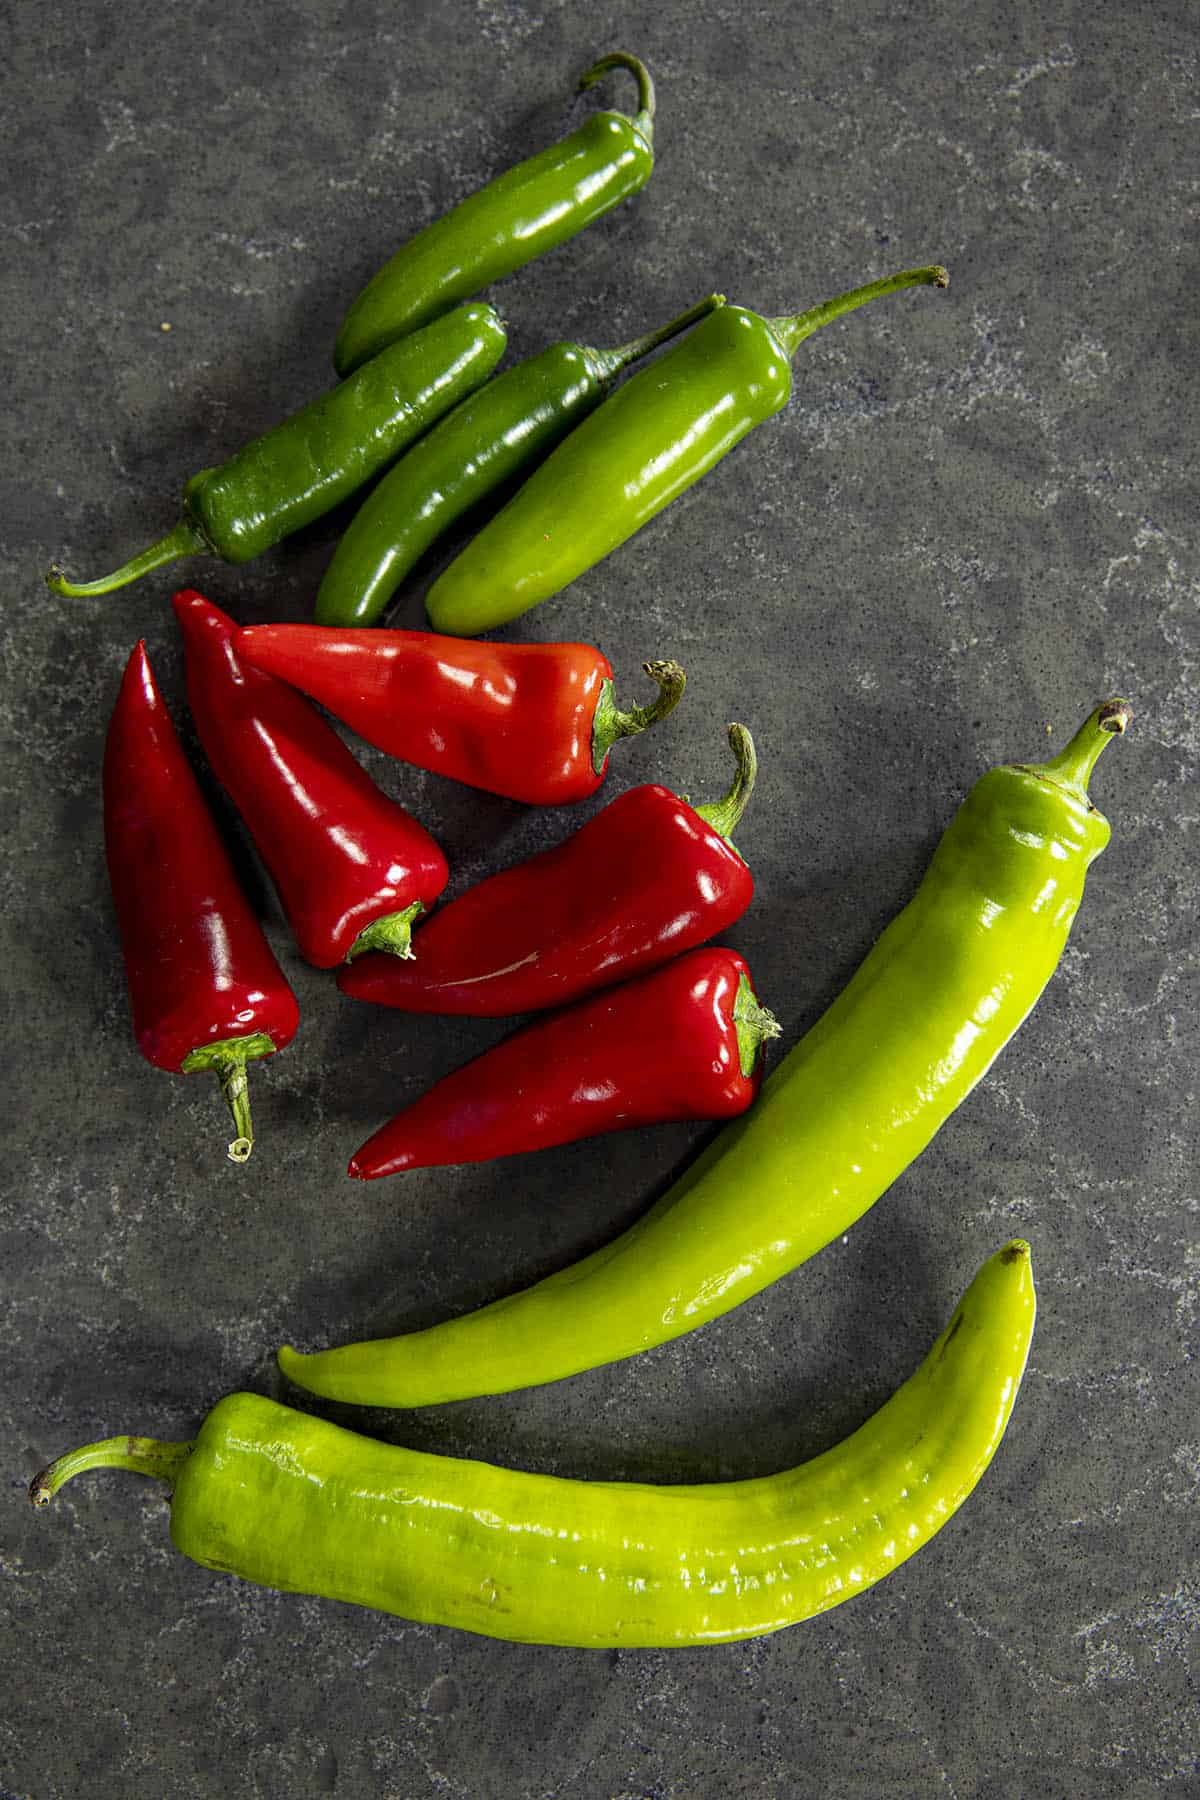 Hot peppers for making pepper relish